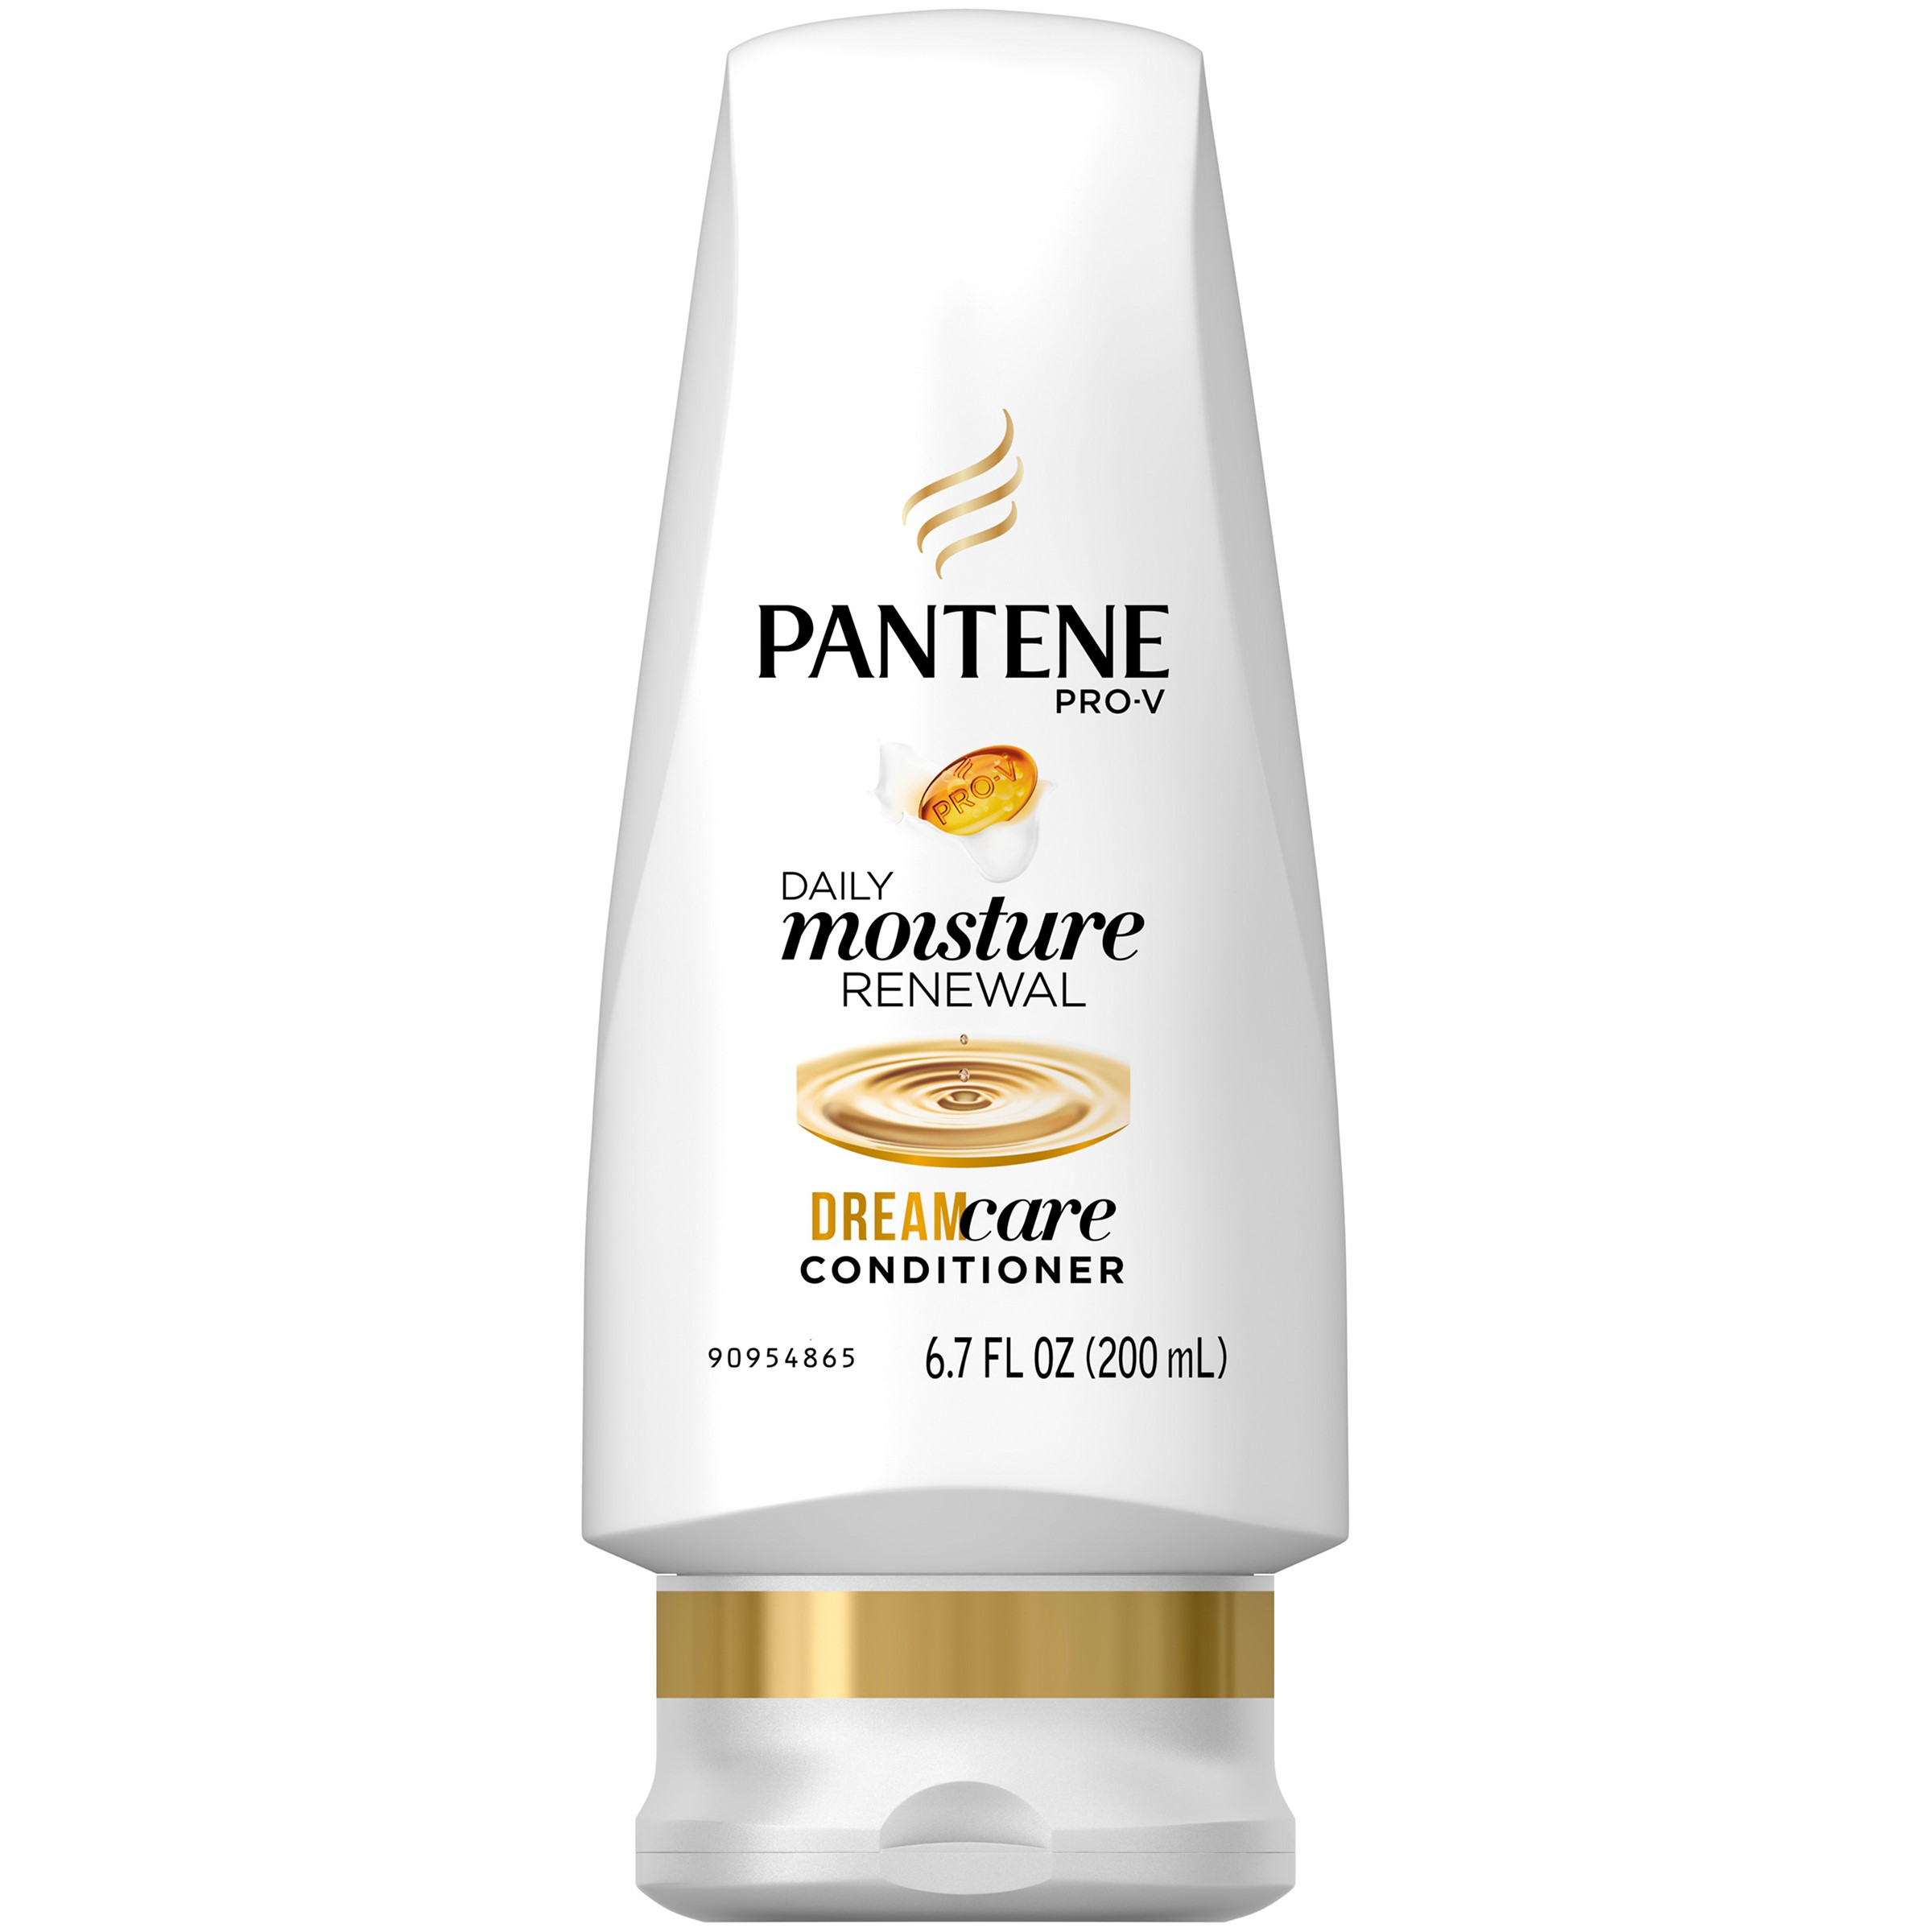 Pantene Pro-V Daily Moisture Renewal Hydrating Conditioner, 6.7 fl oz